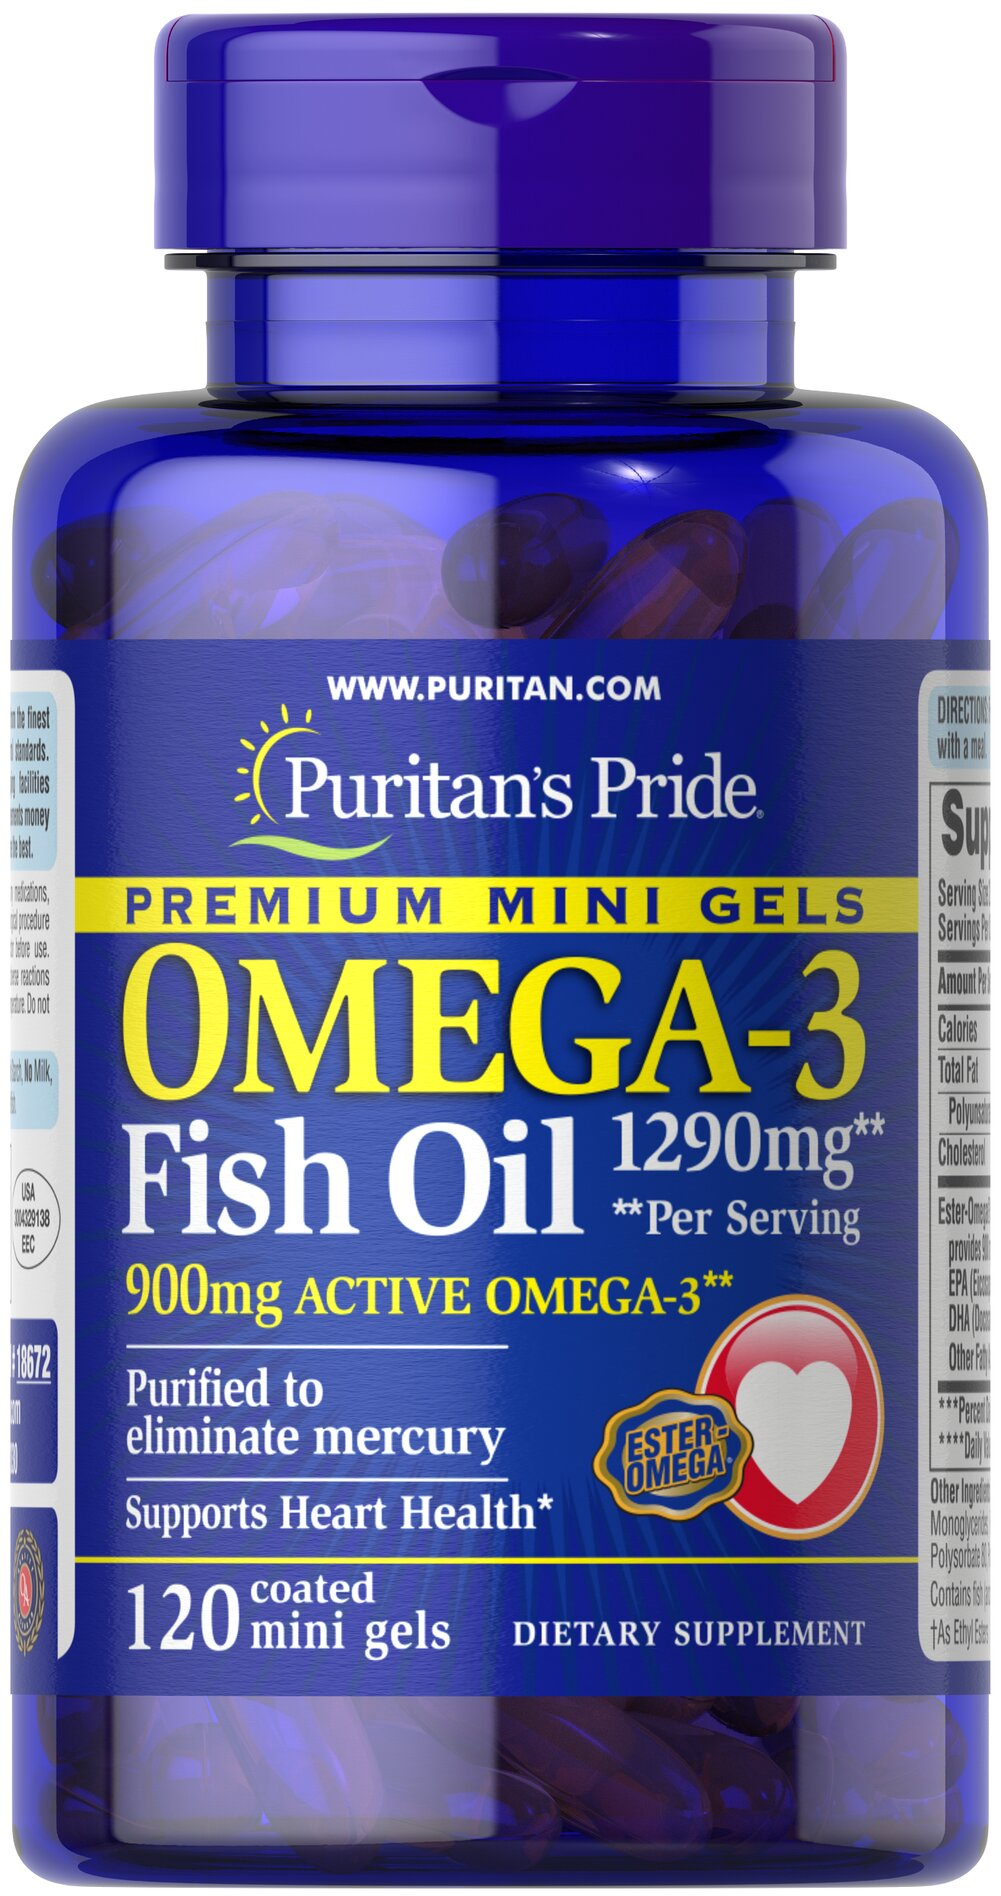 Omega-3 Fish Oil 645 mg Mini Gels (450 mg Active Omega-3)  120 Coated Softgels 645 mg $25.79